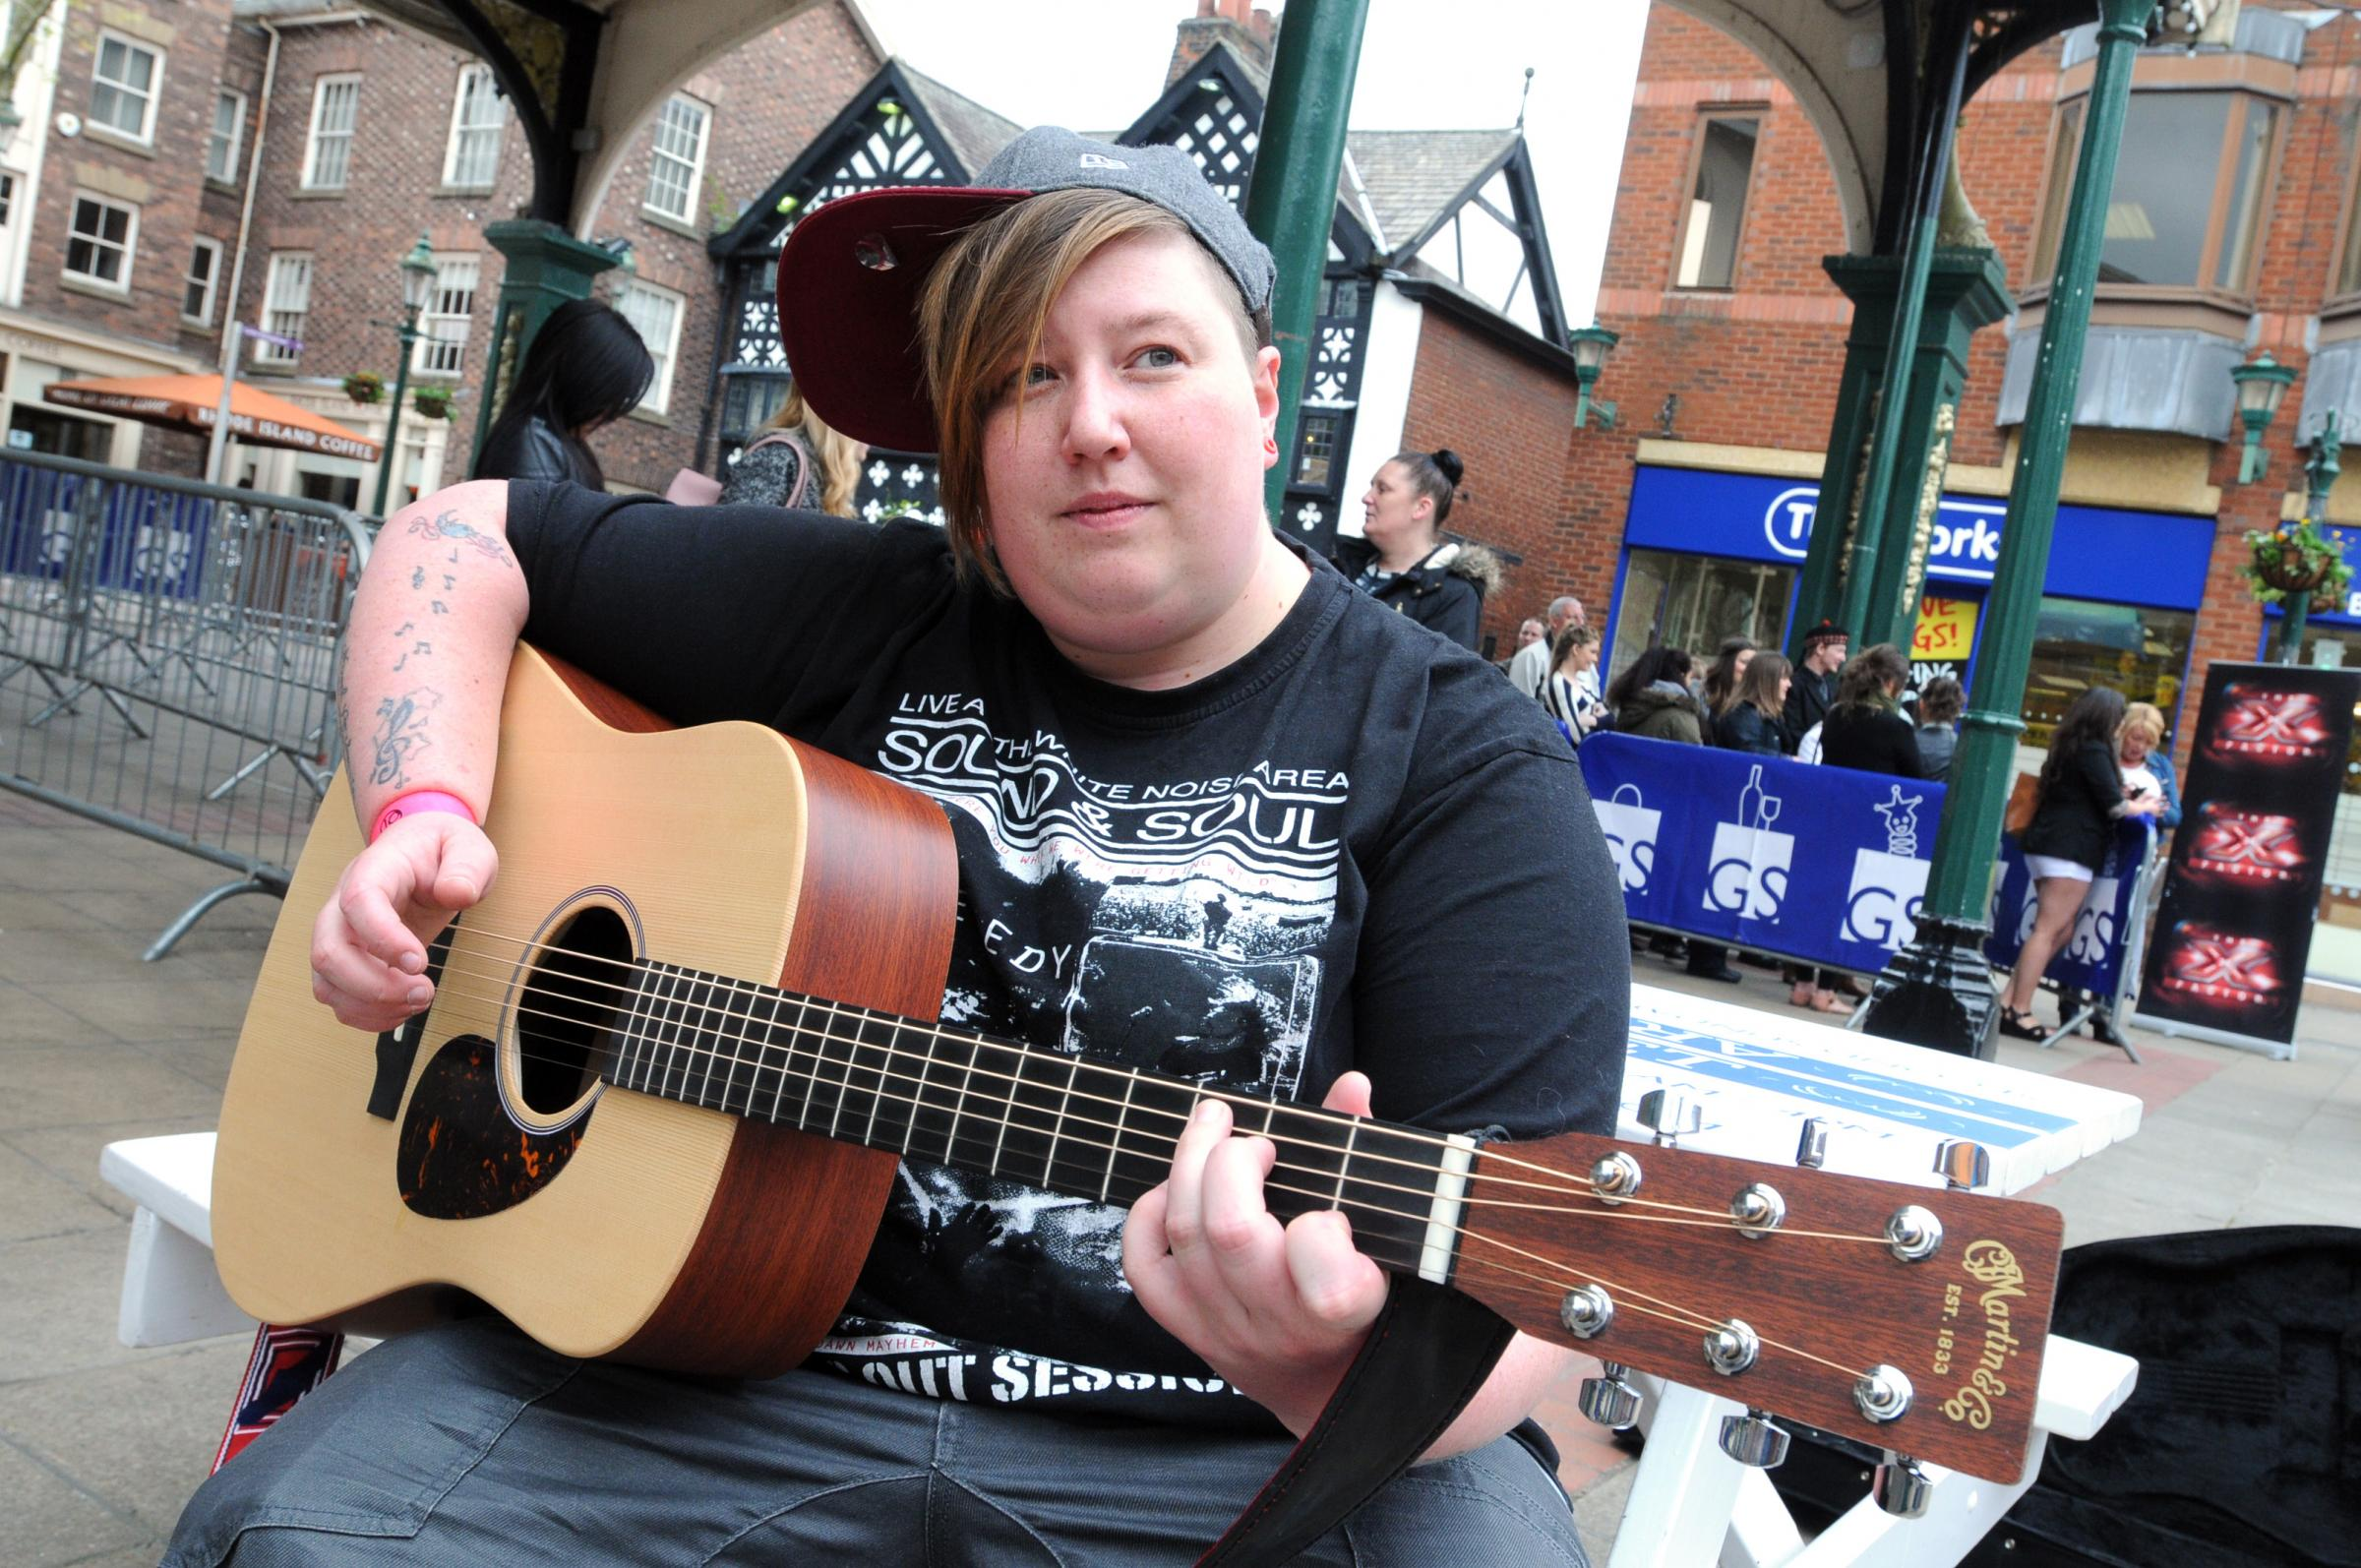 VIDEO: Wannabe stars - including a famous face - line up for Warrington X Factor auditions